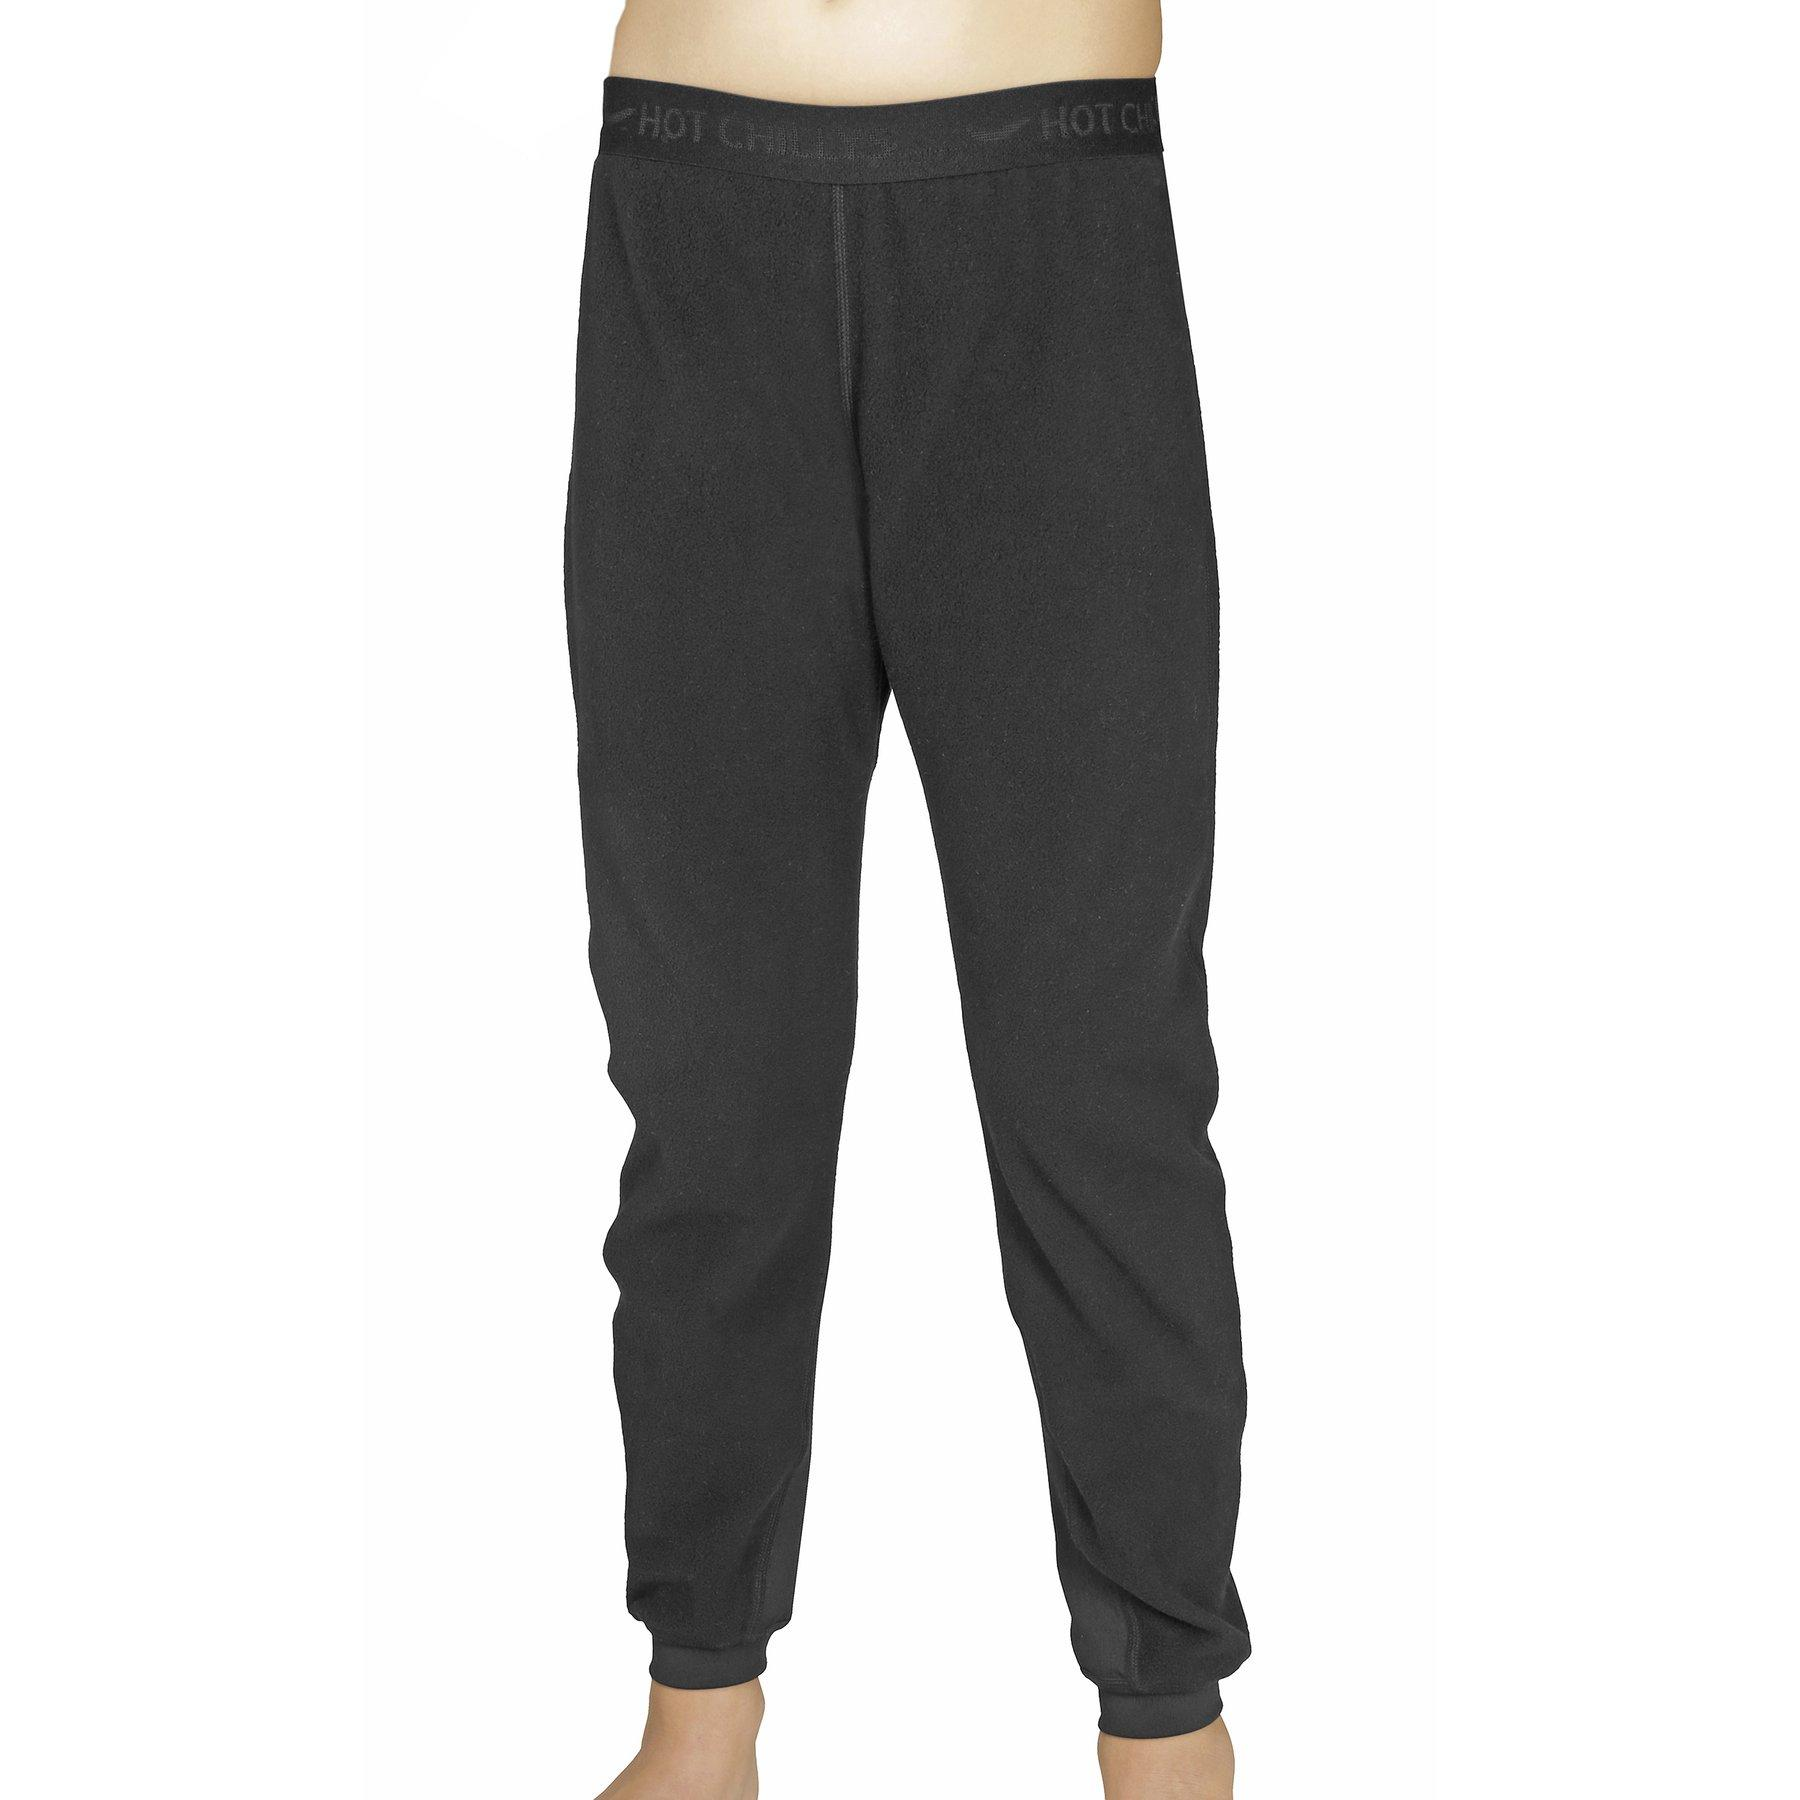 Hot Chillys Kids' La Montana Bottom in Black